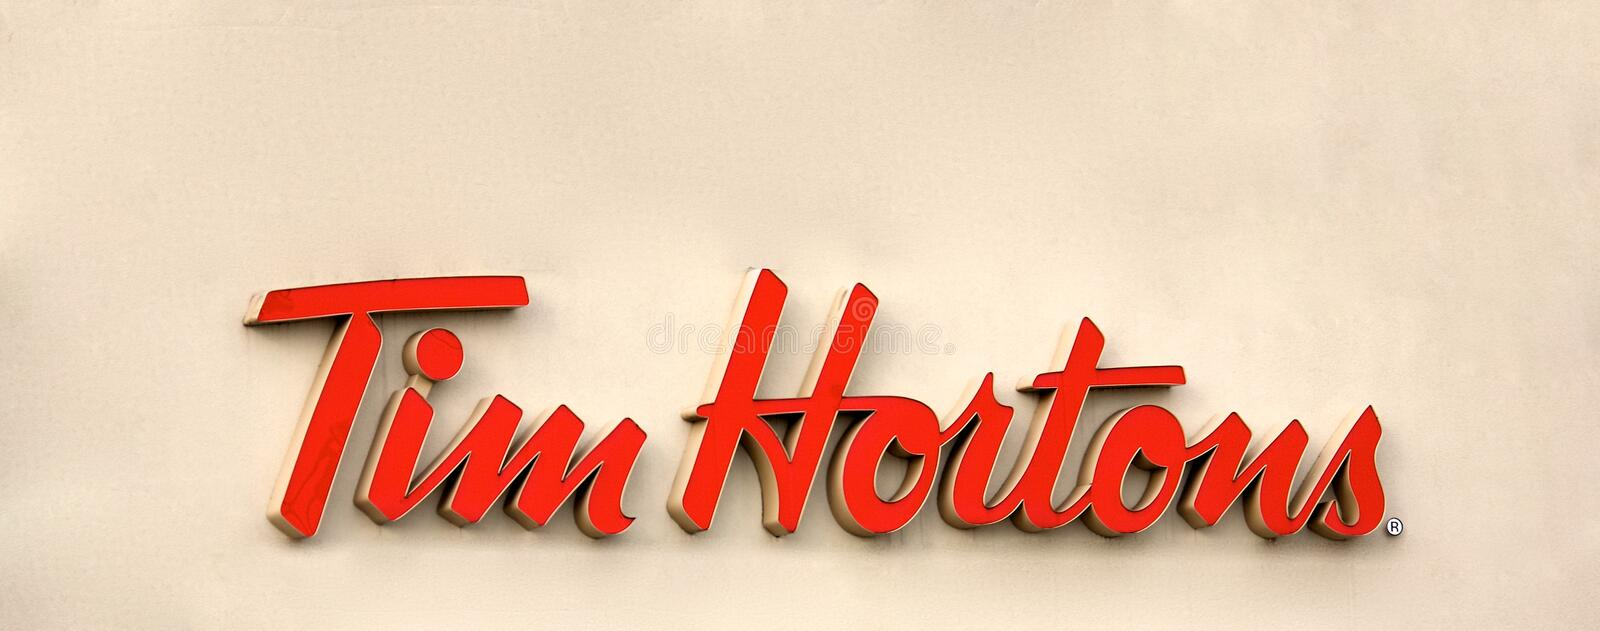 Tim Hortons photos stock